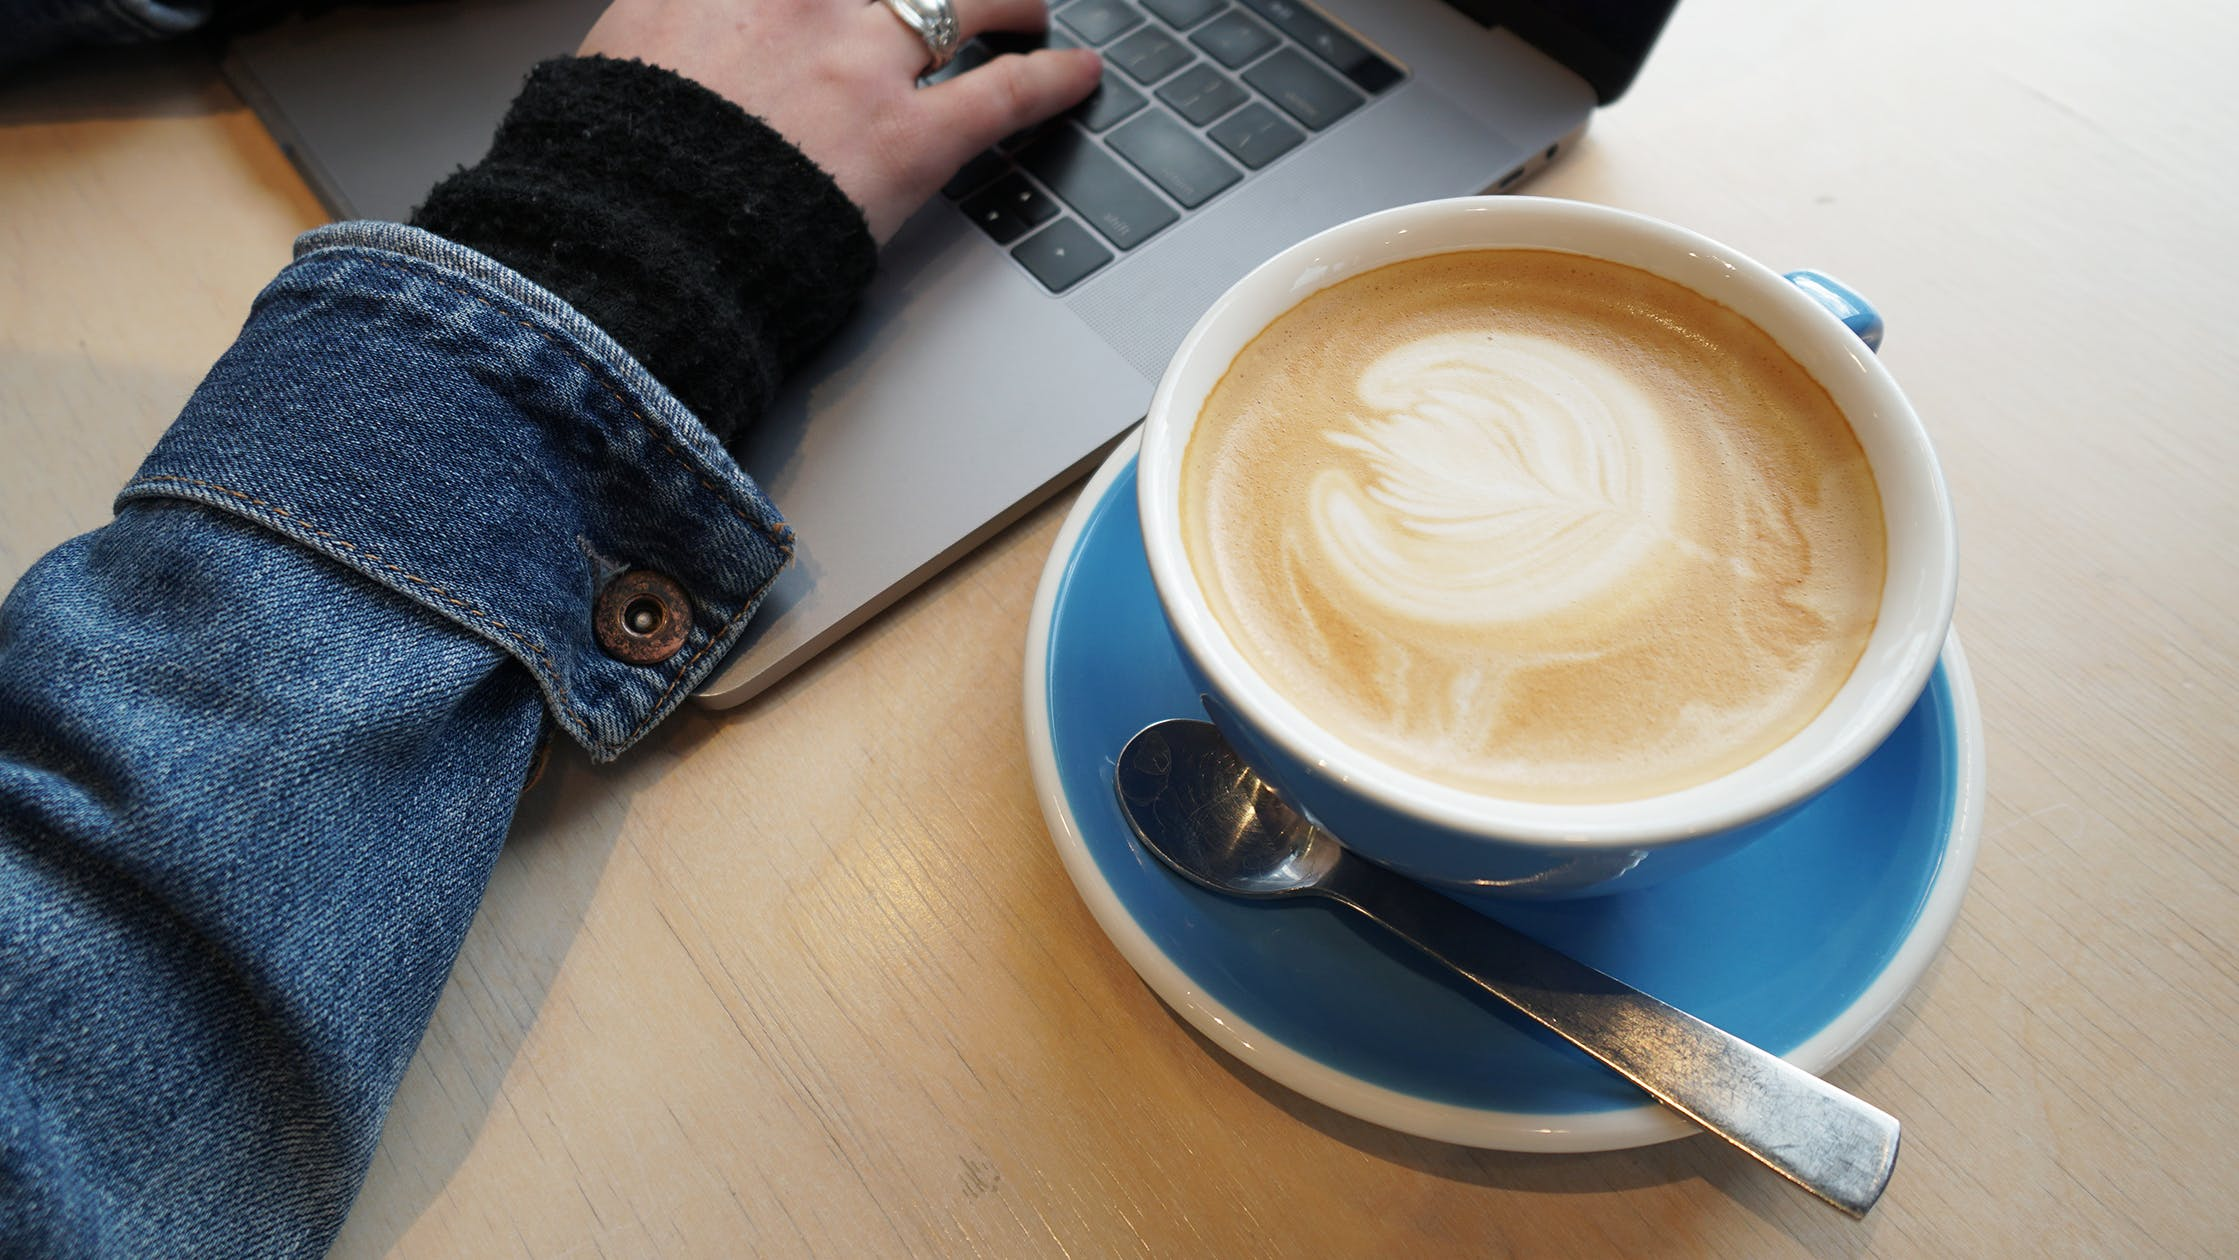 Working Remotely At A Local Coffee Shop With Ordered Beverage